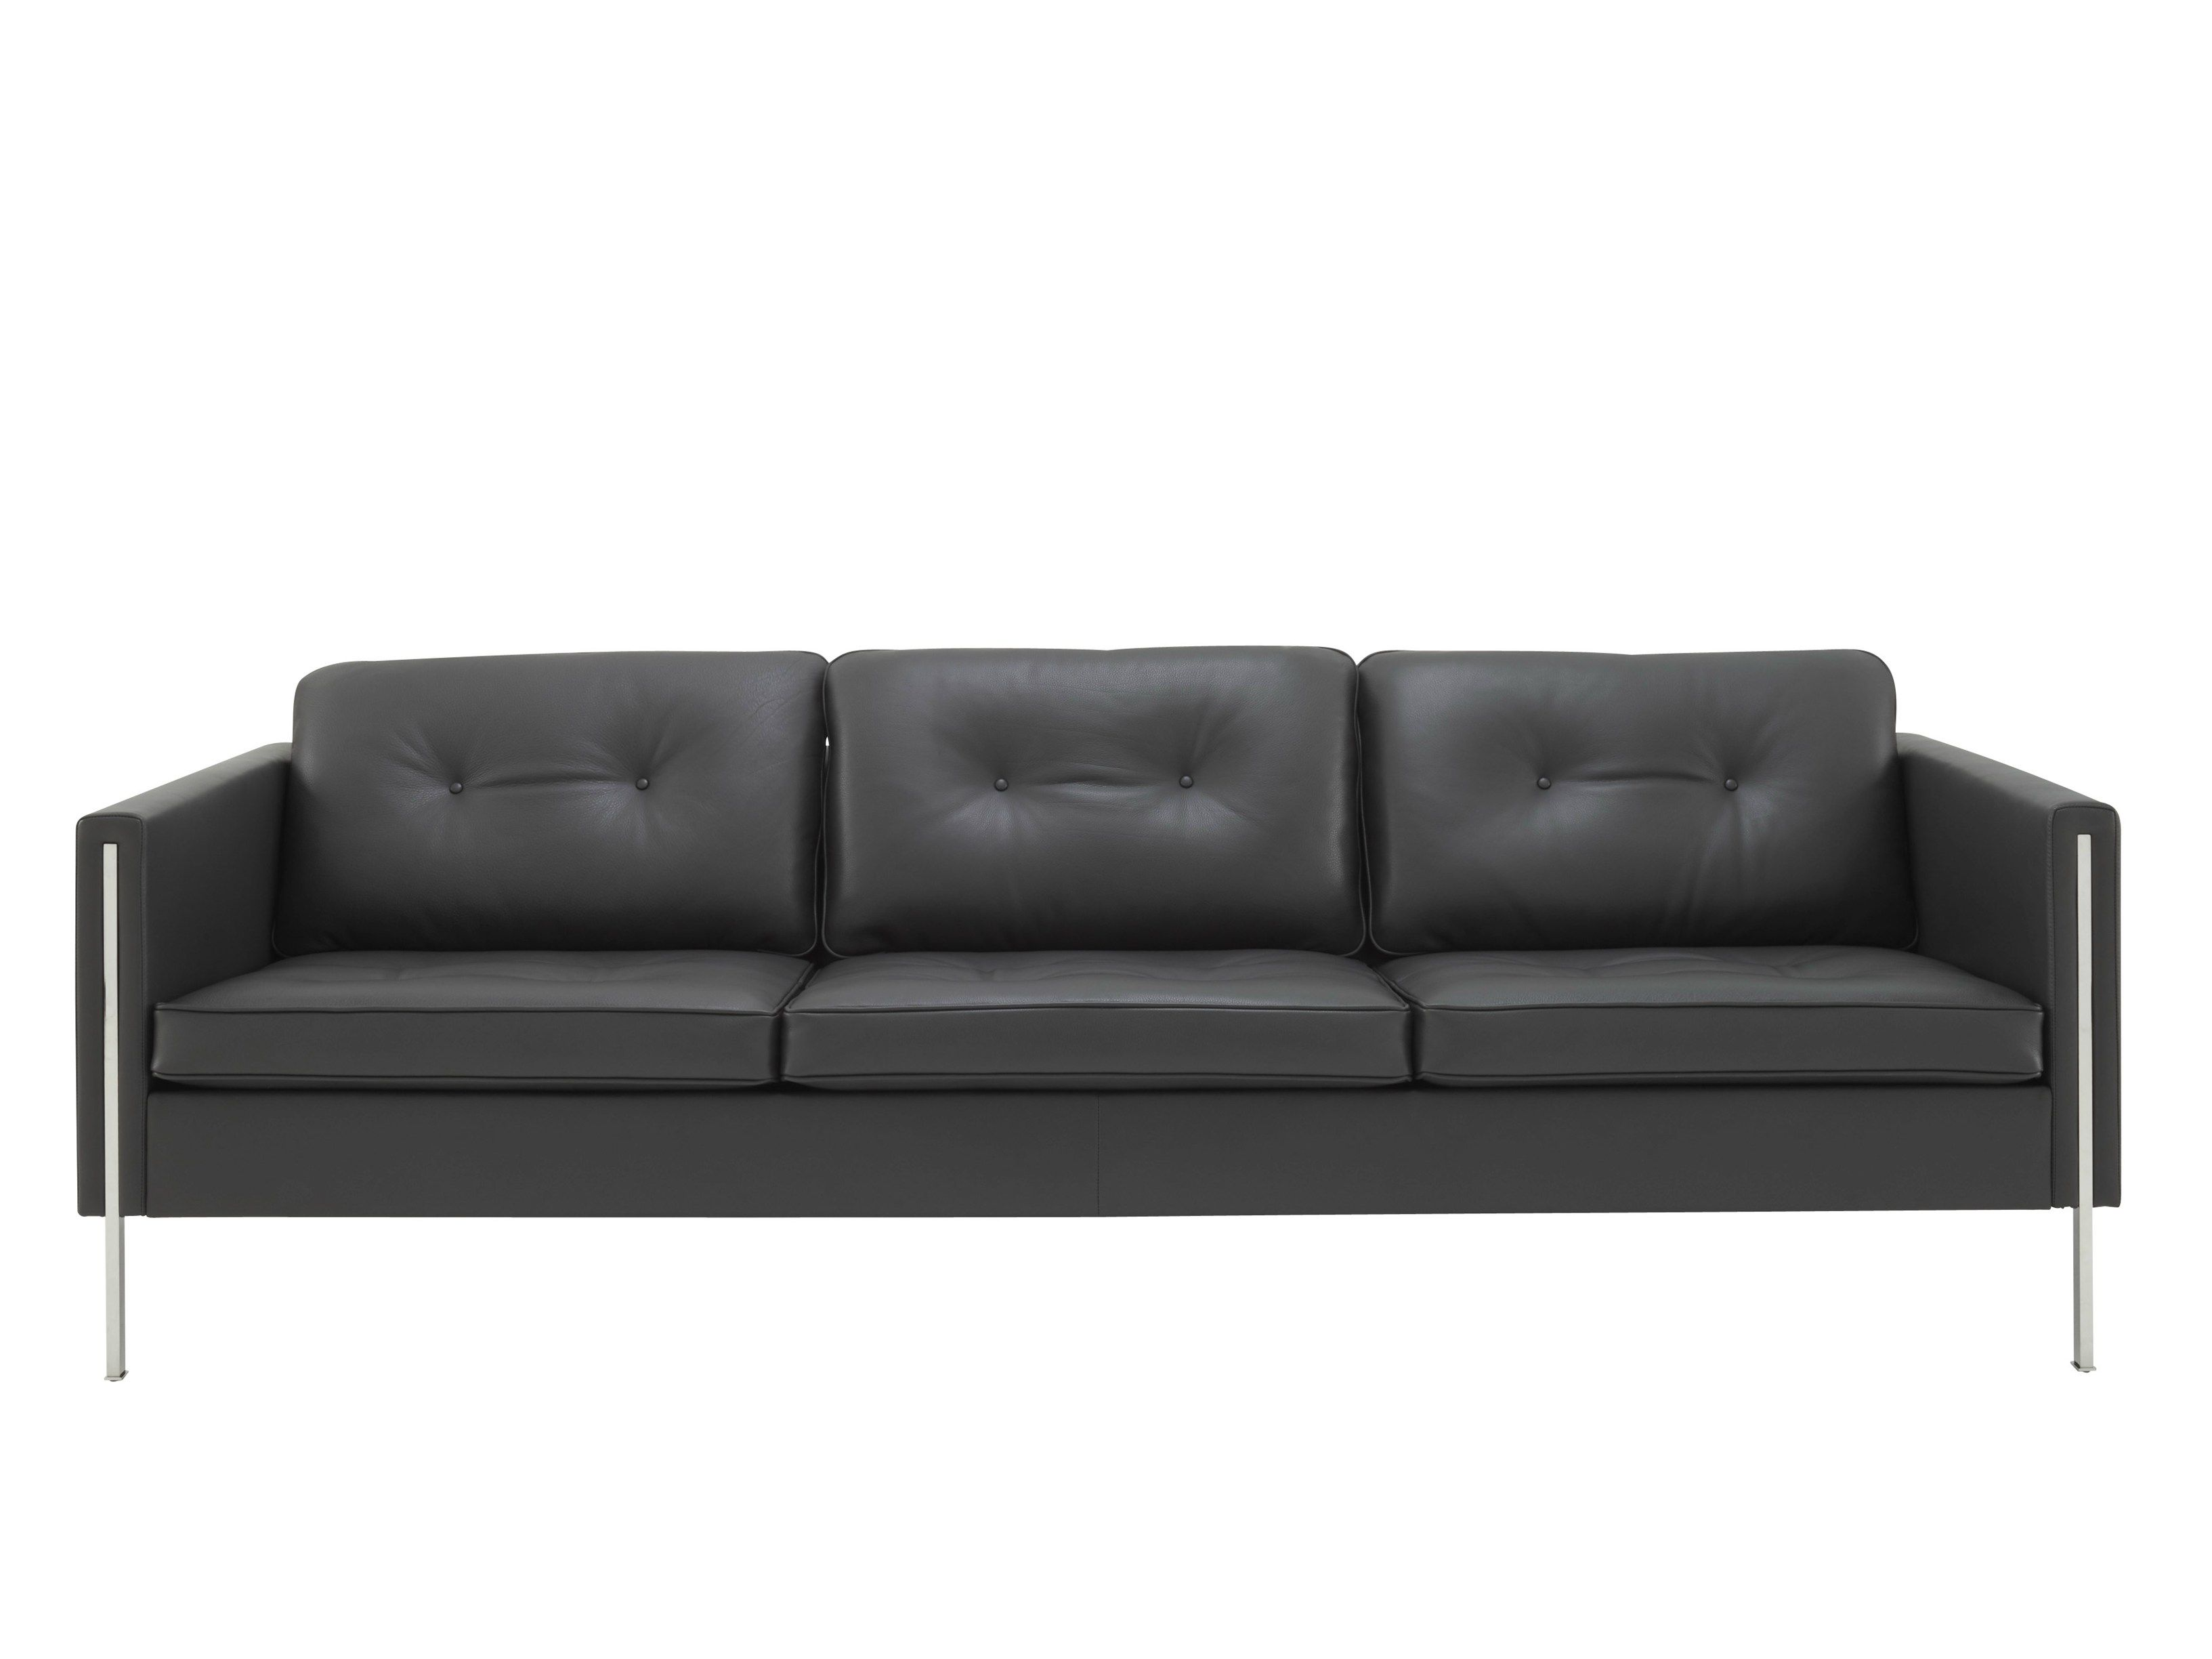 3 Seater Leather Sofa Andy 3 Seater Sofa Roset Italia 3 Seater Sofa 3 Seater Leather Sofa